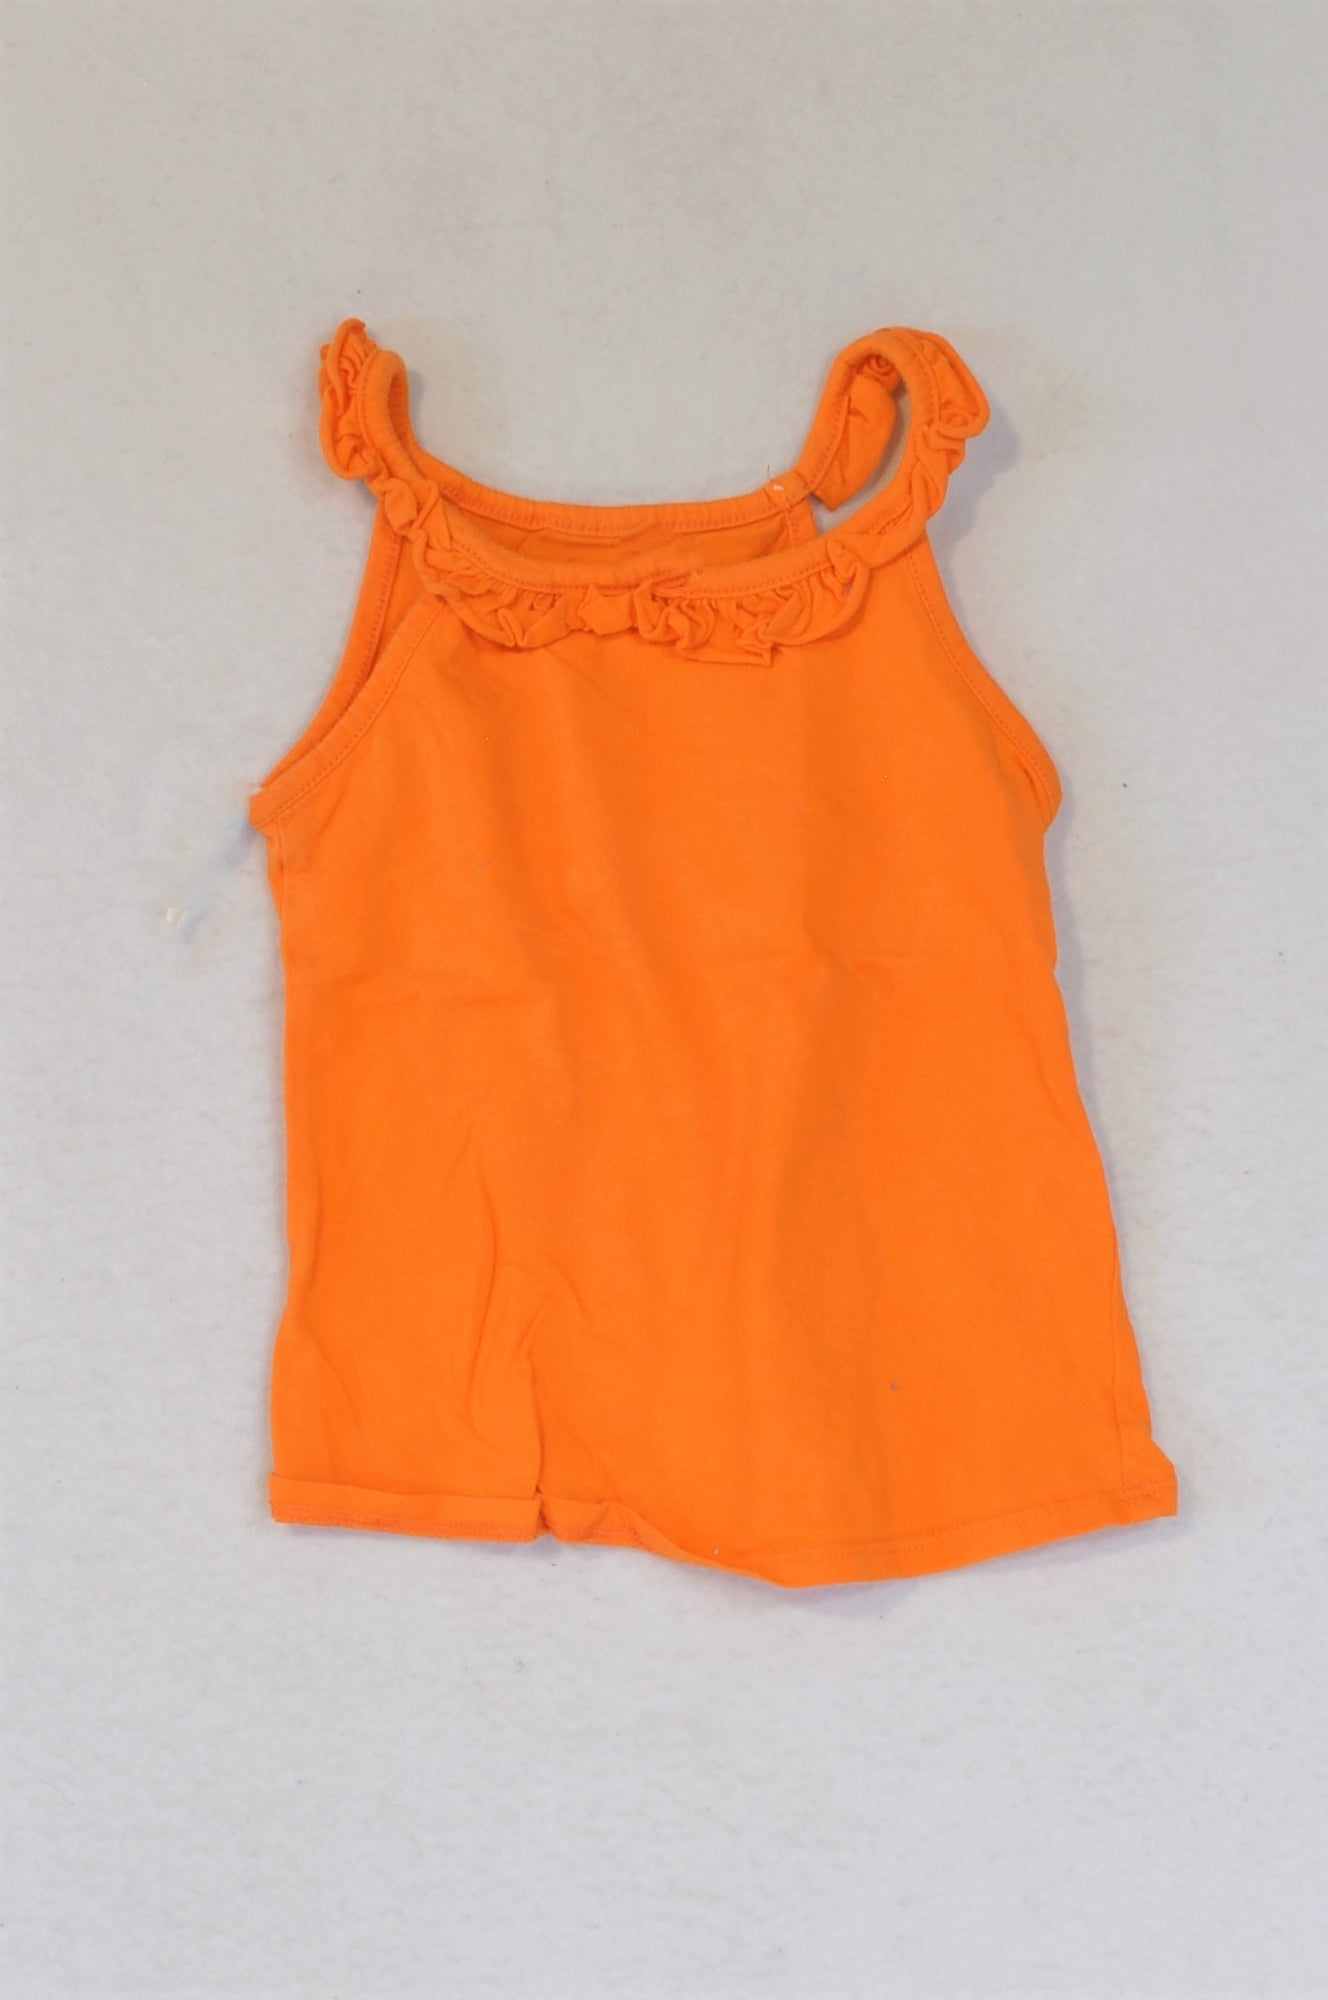 Woolworths Orange Frill Tank Top Girls 3-4 years